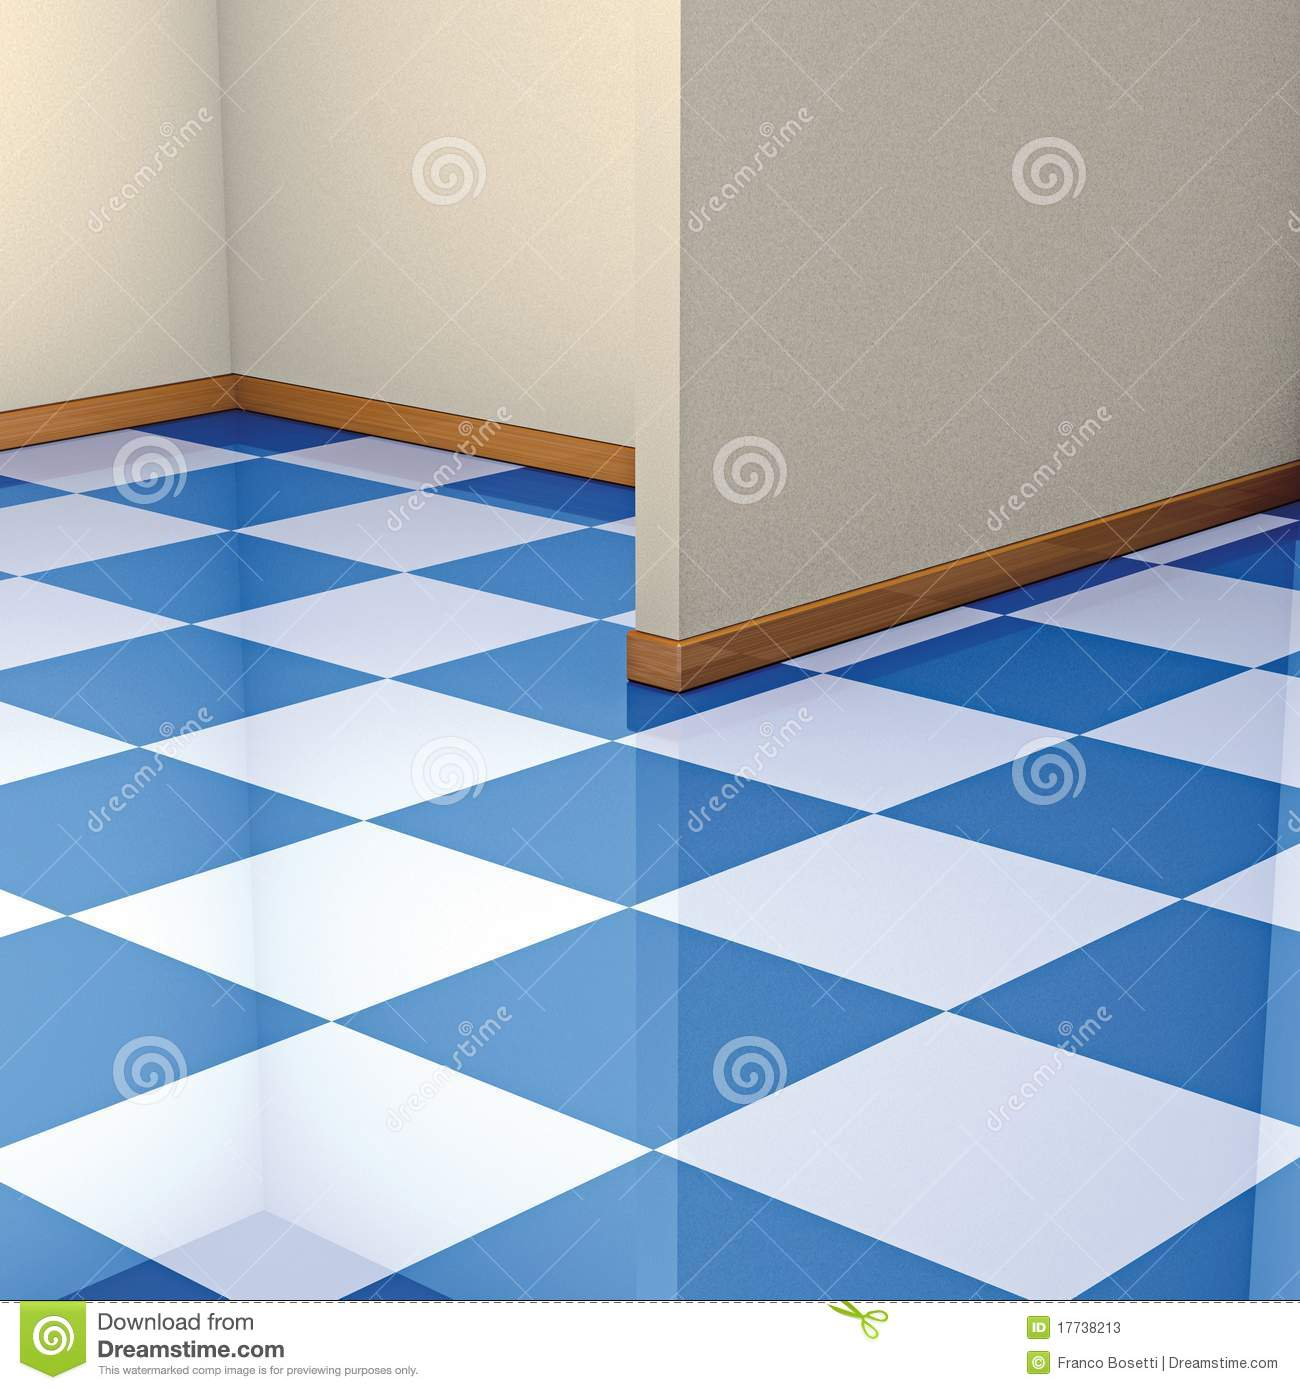 Corner and floor tiles stock illustration. Illustration of angles ...